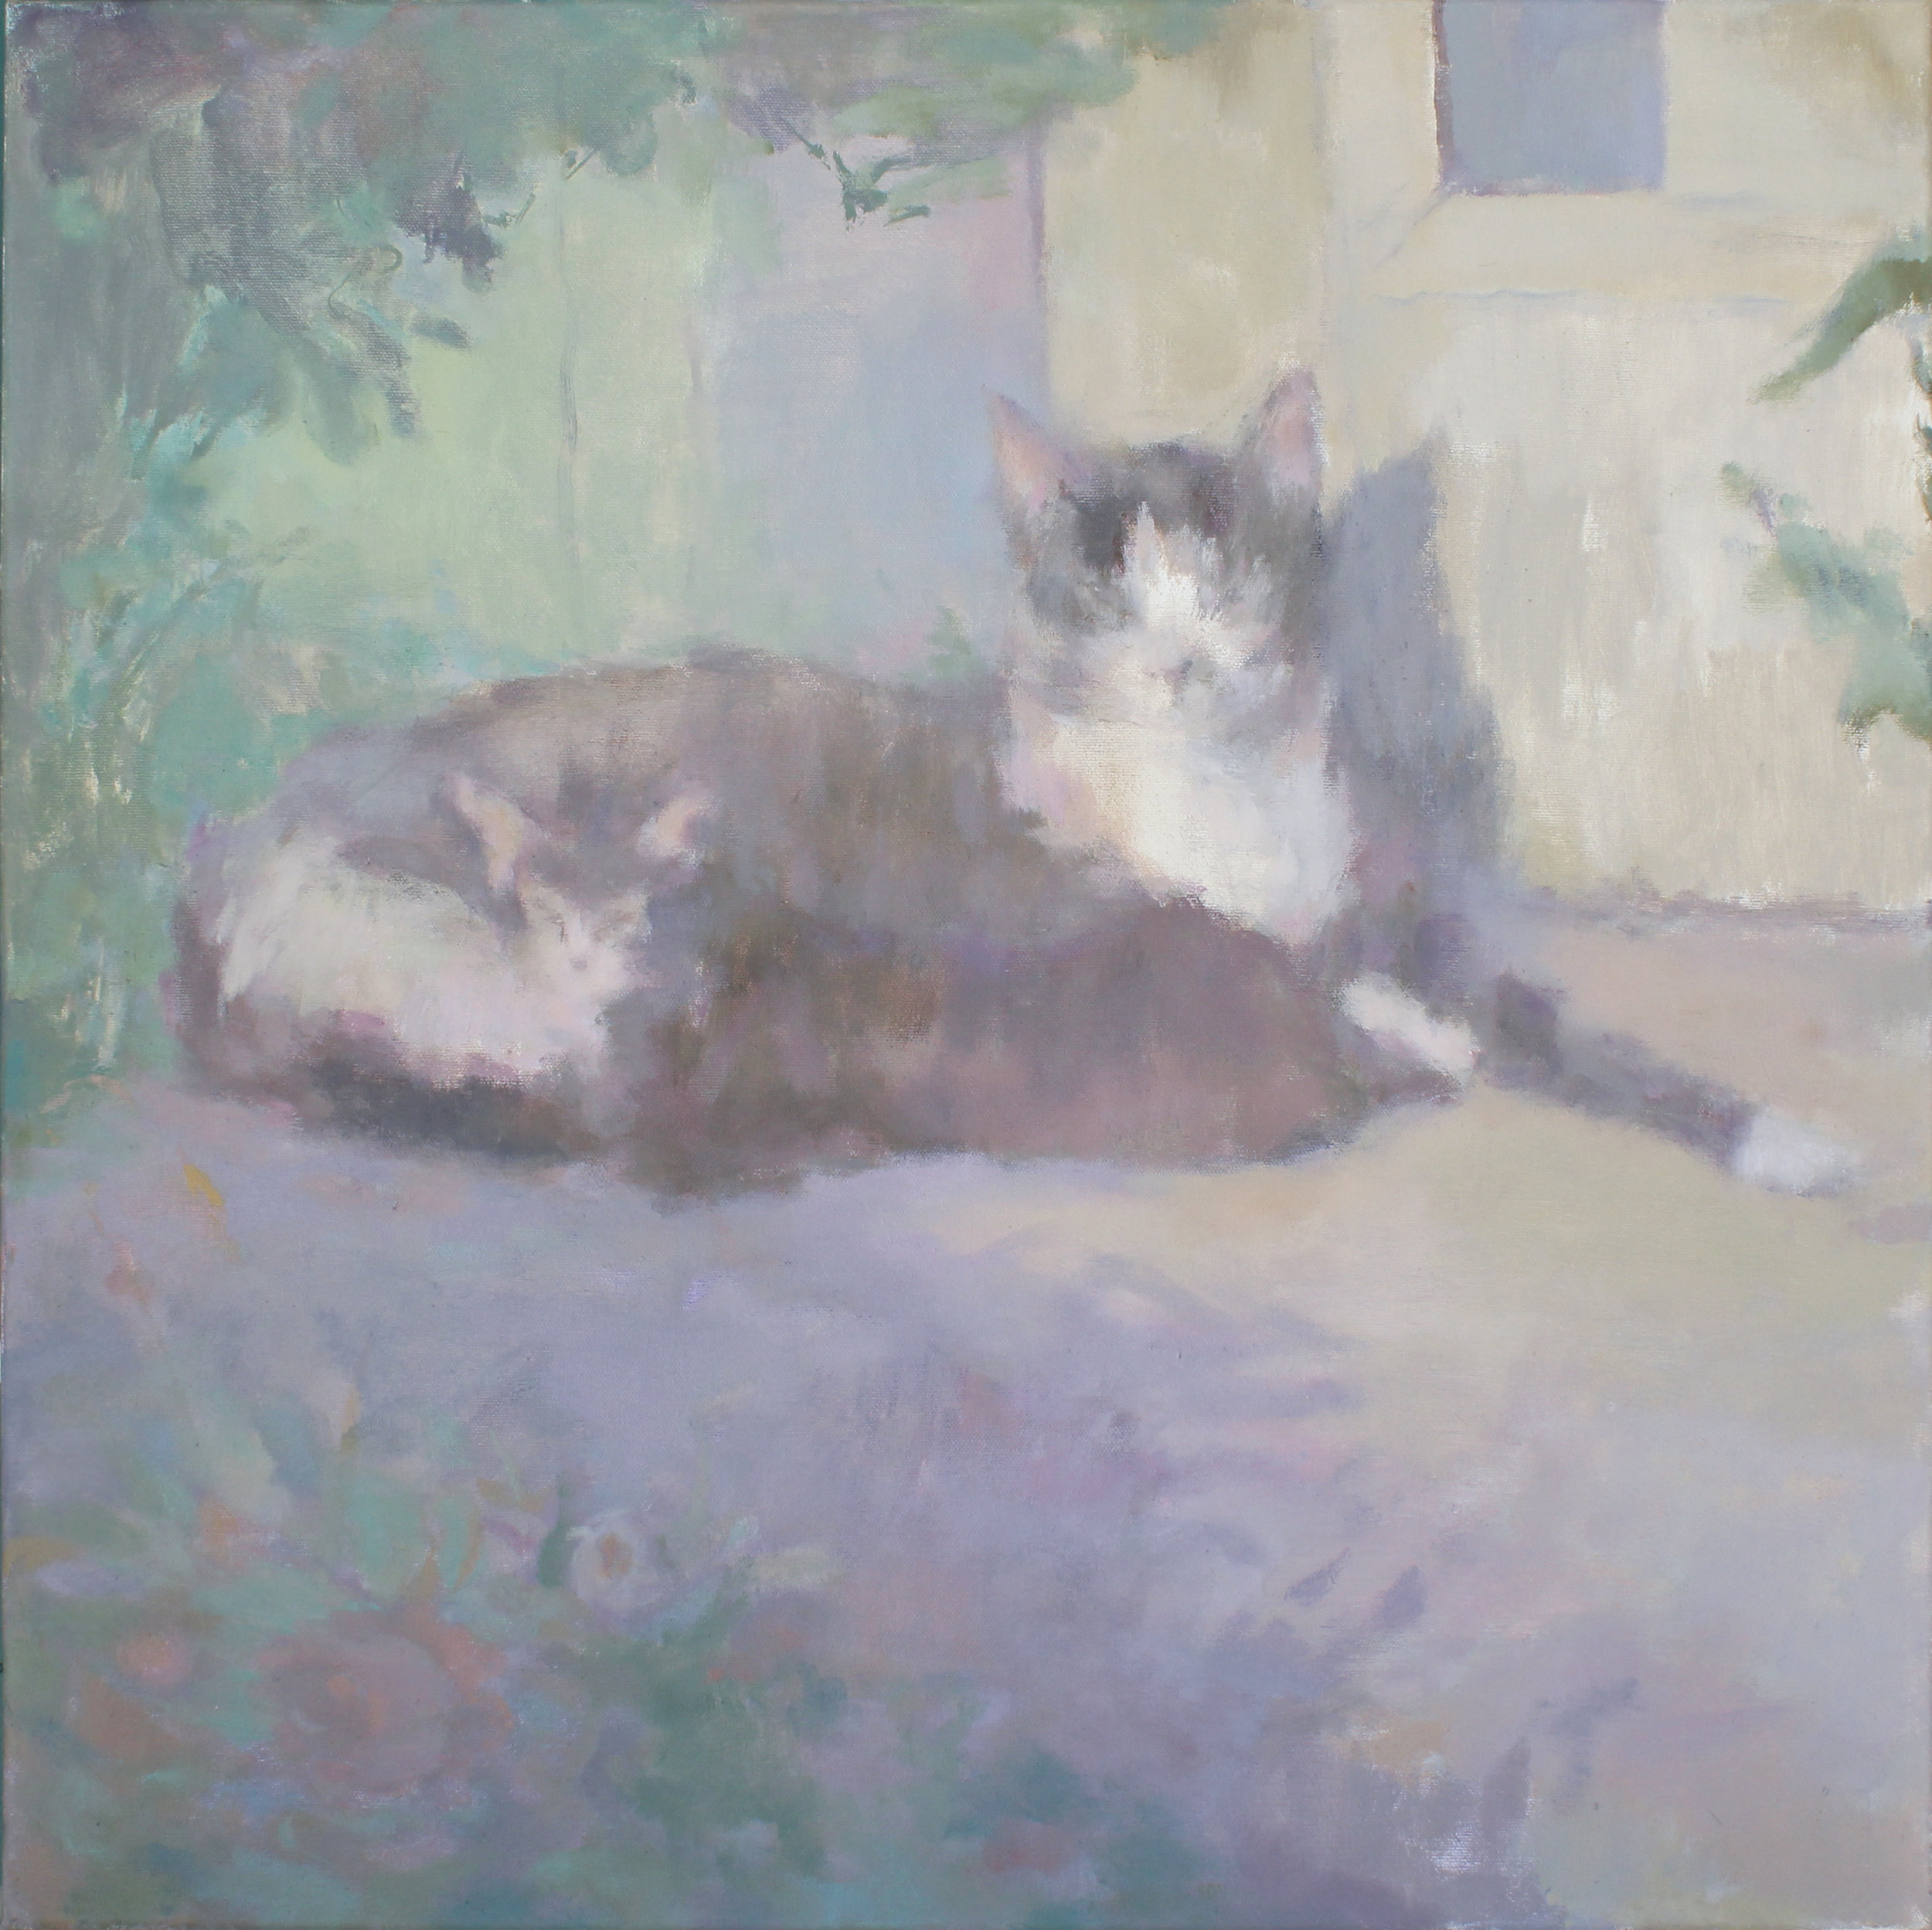 "Shadow Cats  oil on canvas 24 x 24"" 2019   purchase original"